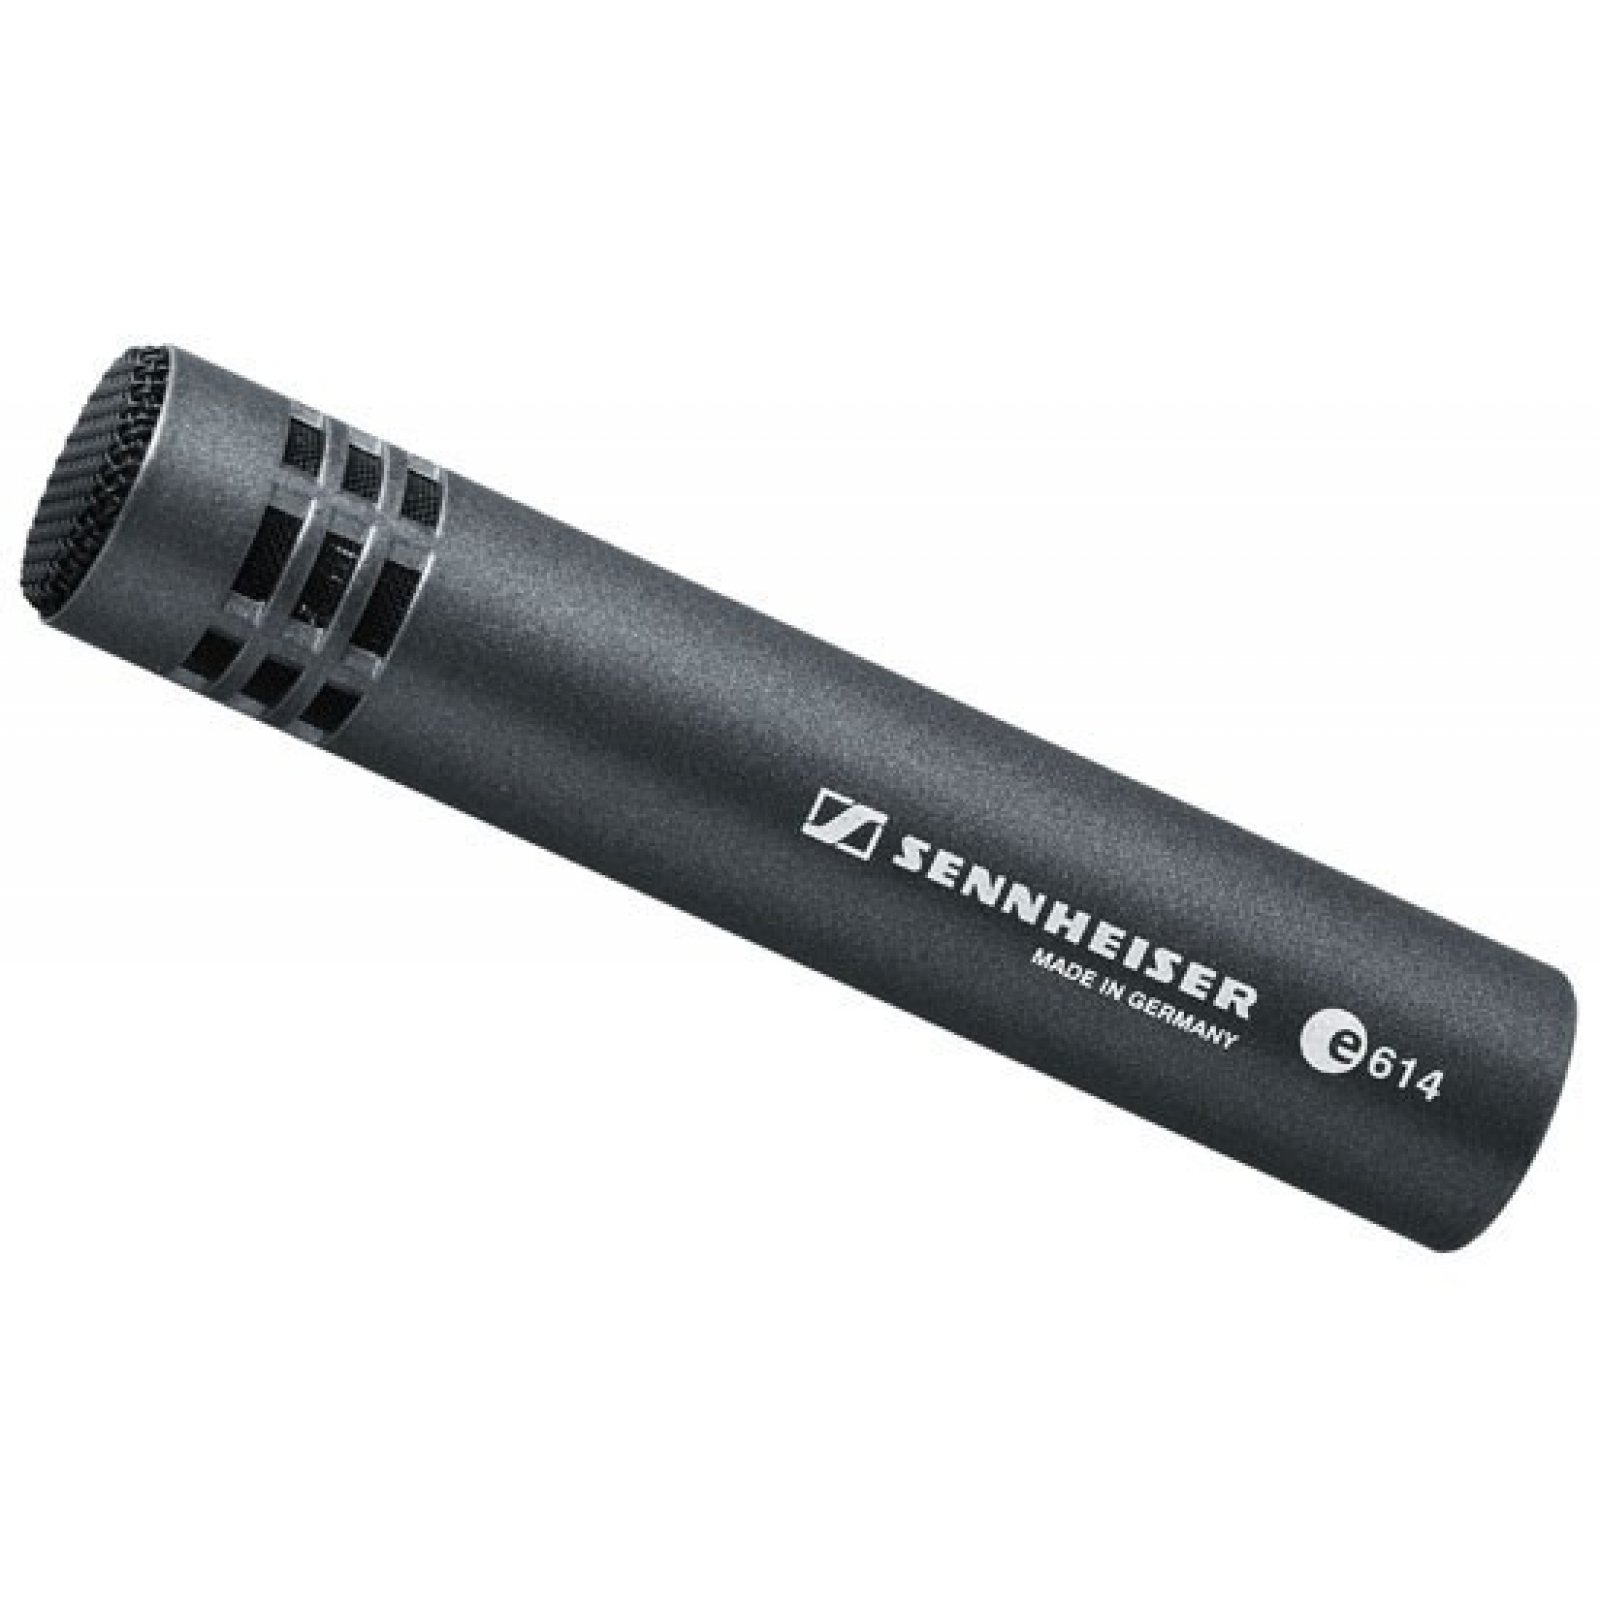 Микрофон конденс.(over) Sennheiser e614